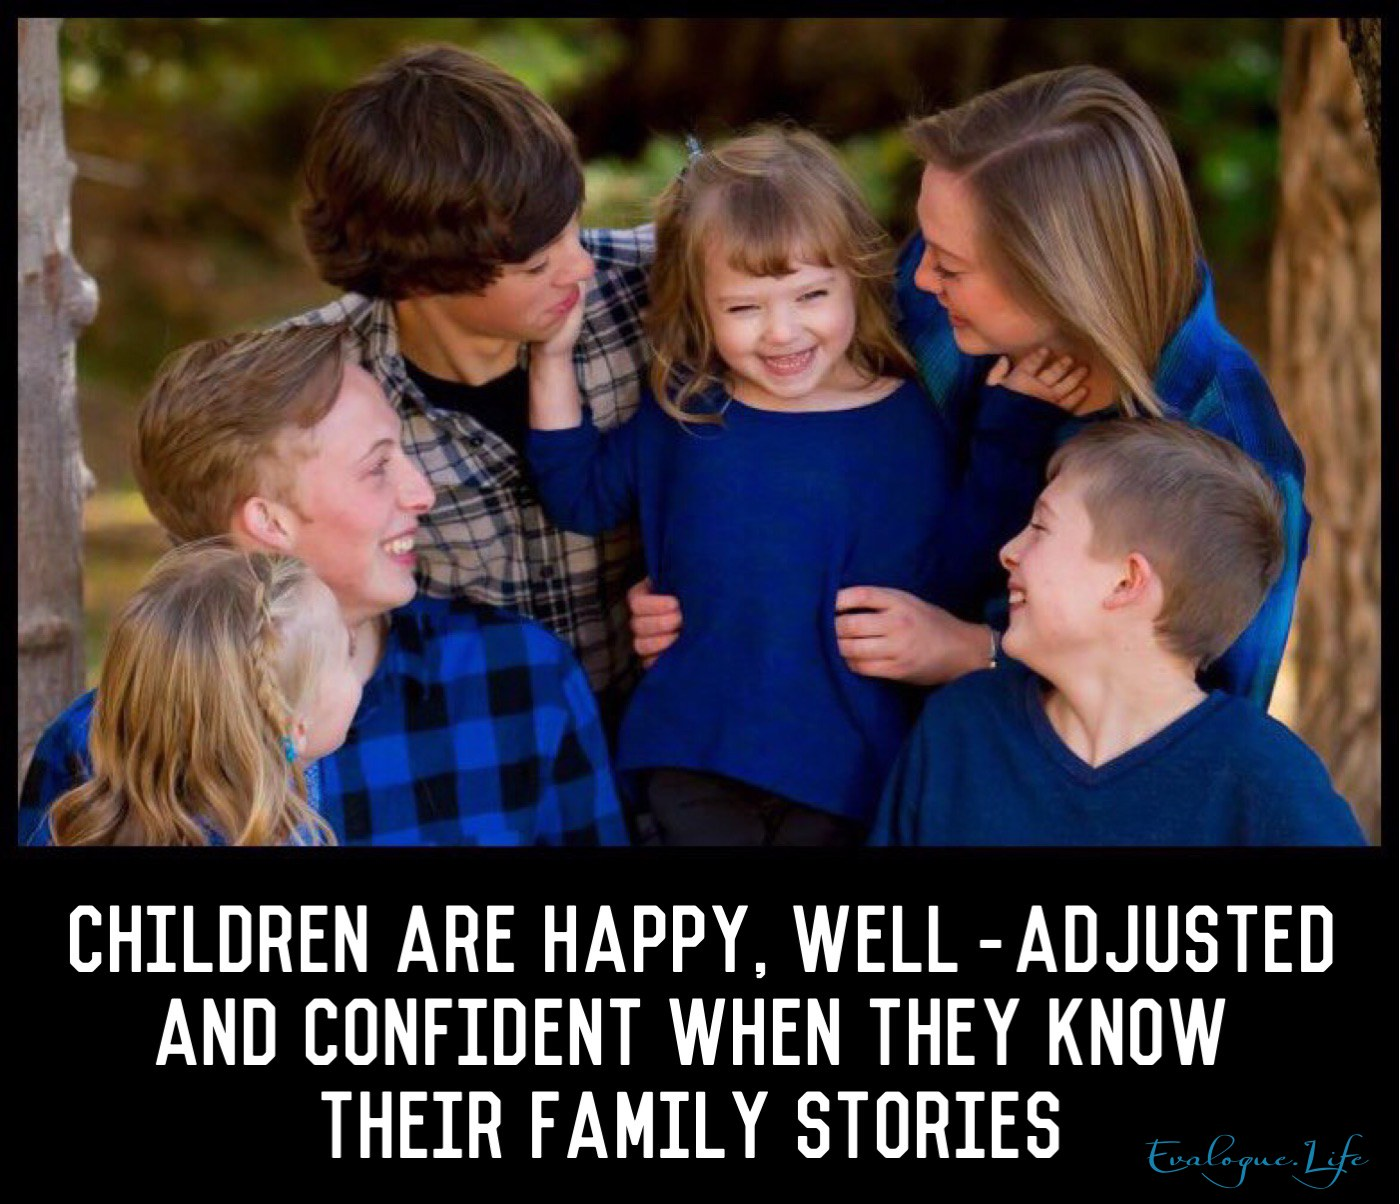 Children are happy, well-adjusted and confident when they know their family stories.